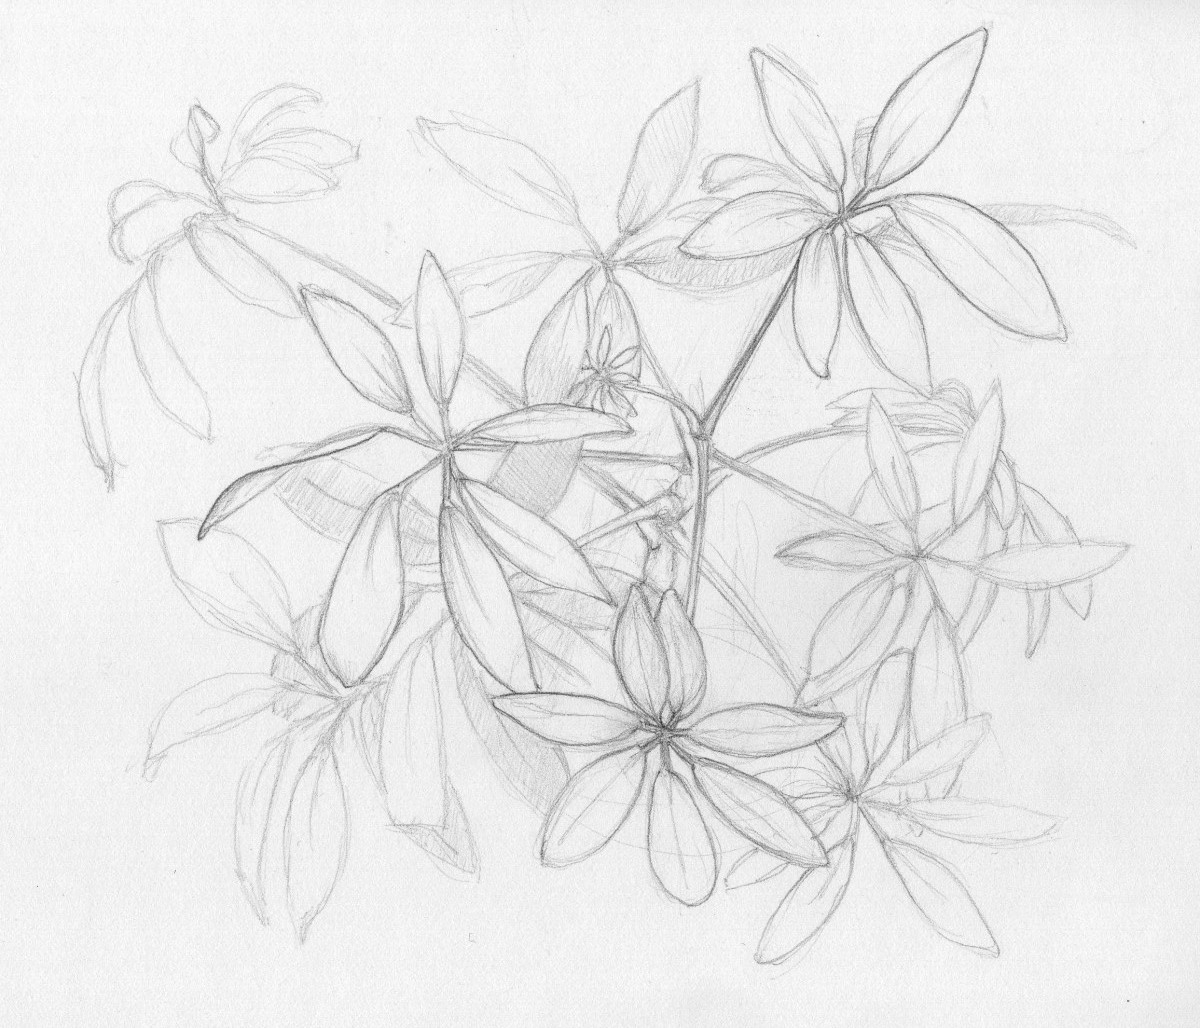 Fireworks - original drawing of Shefflera plant